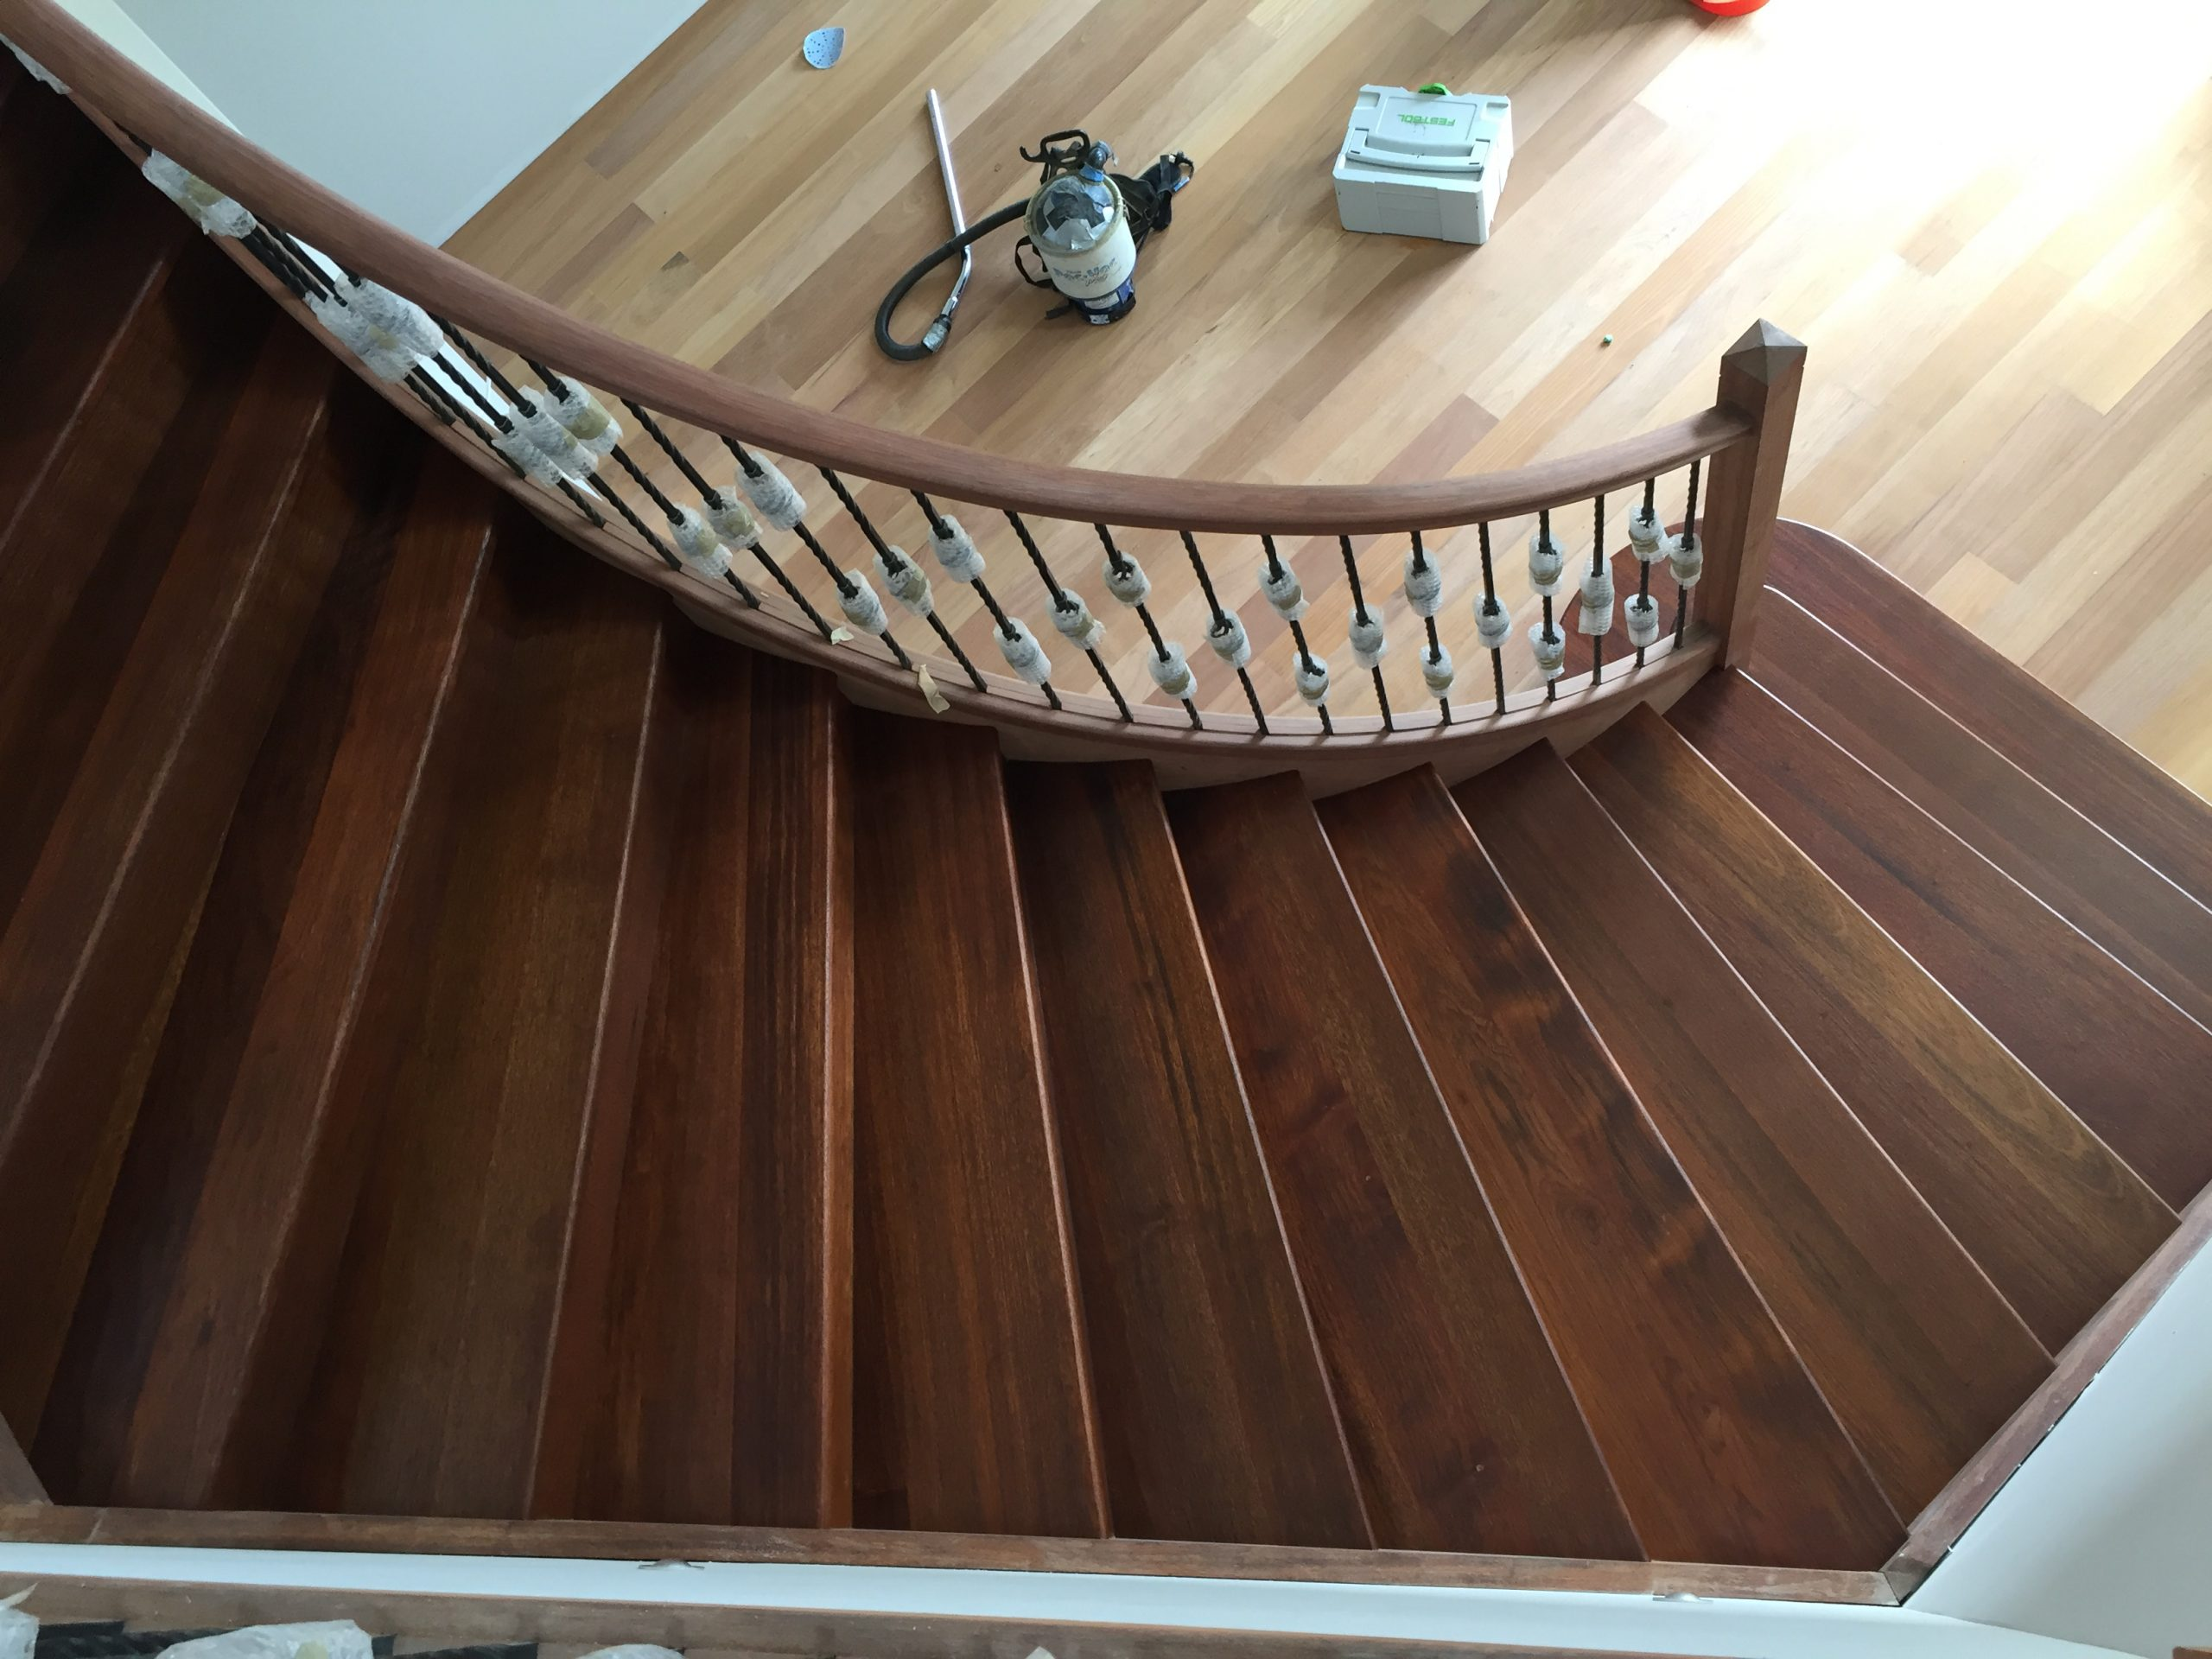 https://coastflooring.co.nz/wp-content/uploads/2020/05/New-Kwila-stairs-with-Moisture-cure-Polyurethane-finish-scaled.jpg